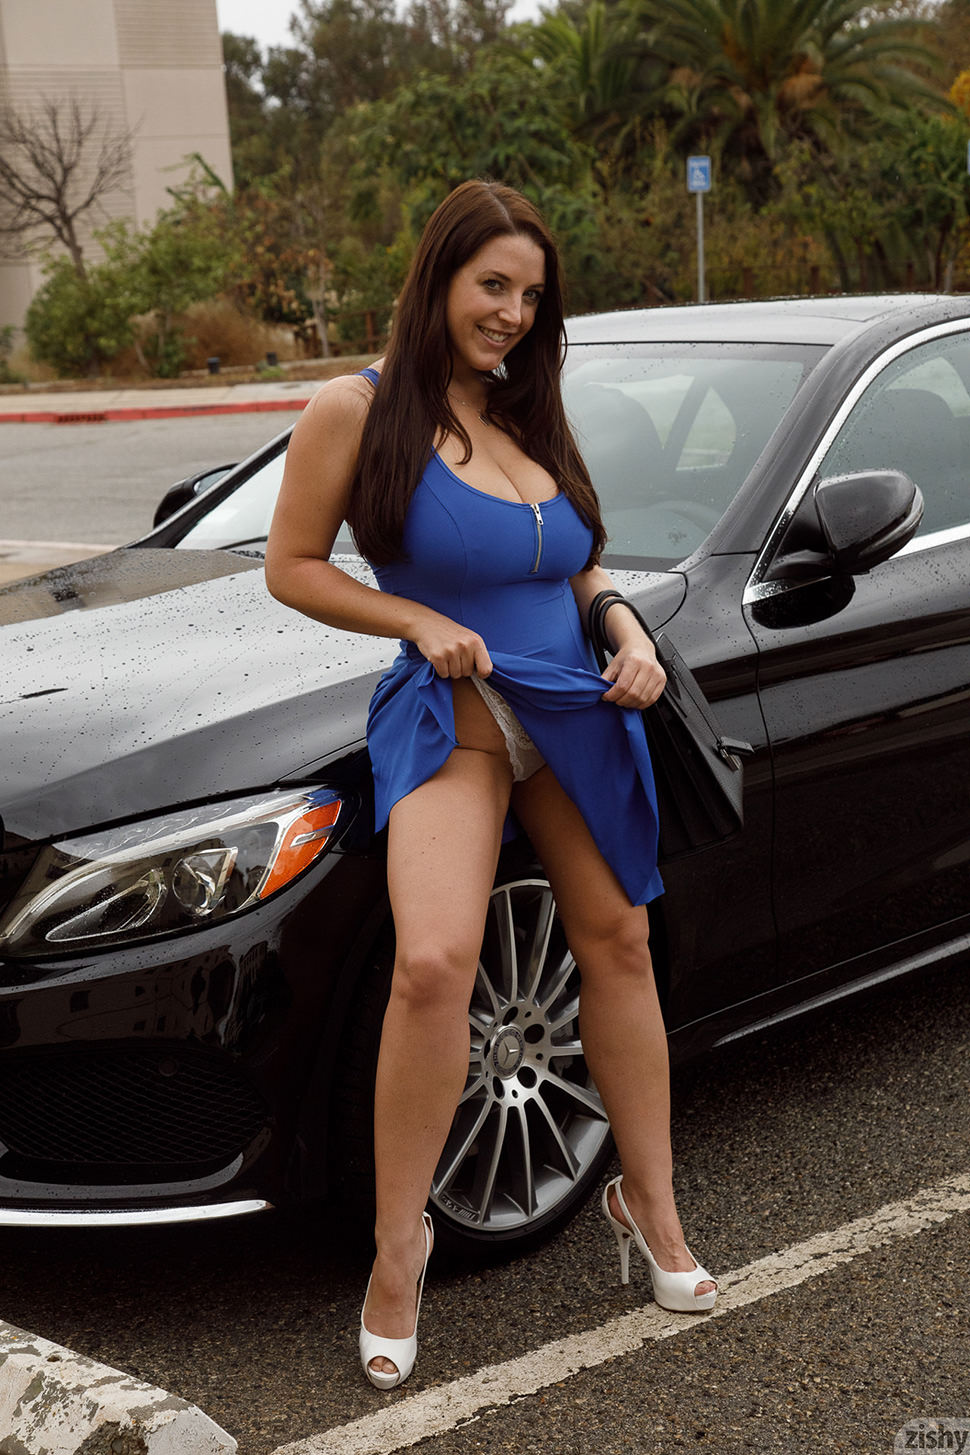 angela white zishy